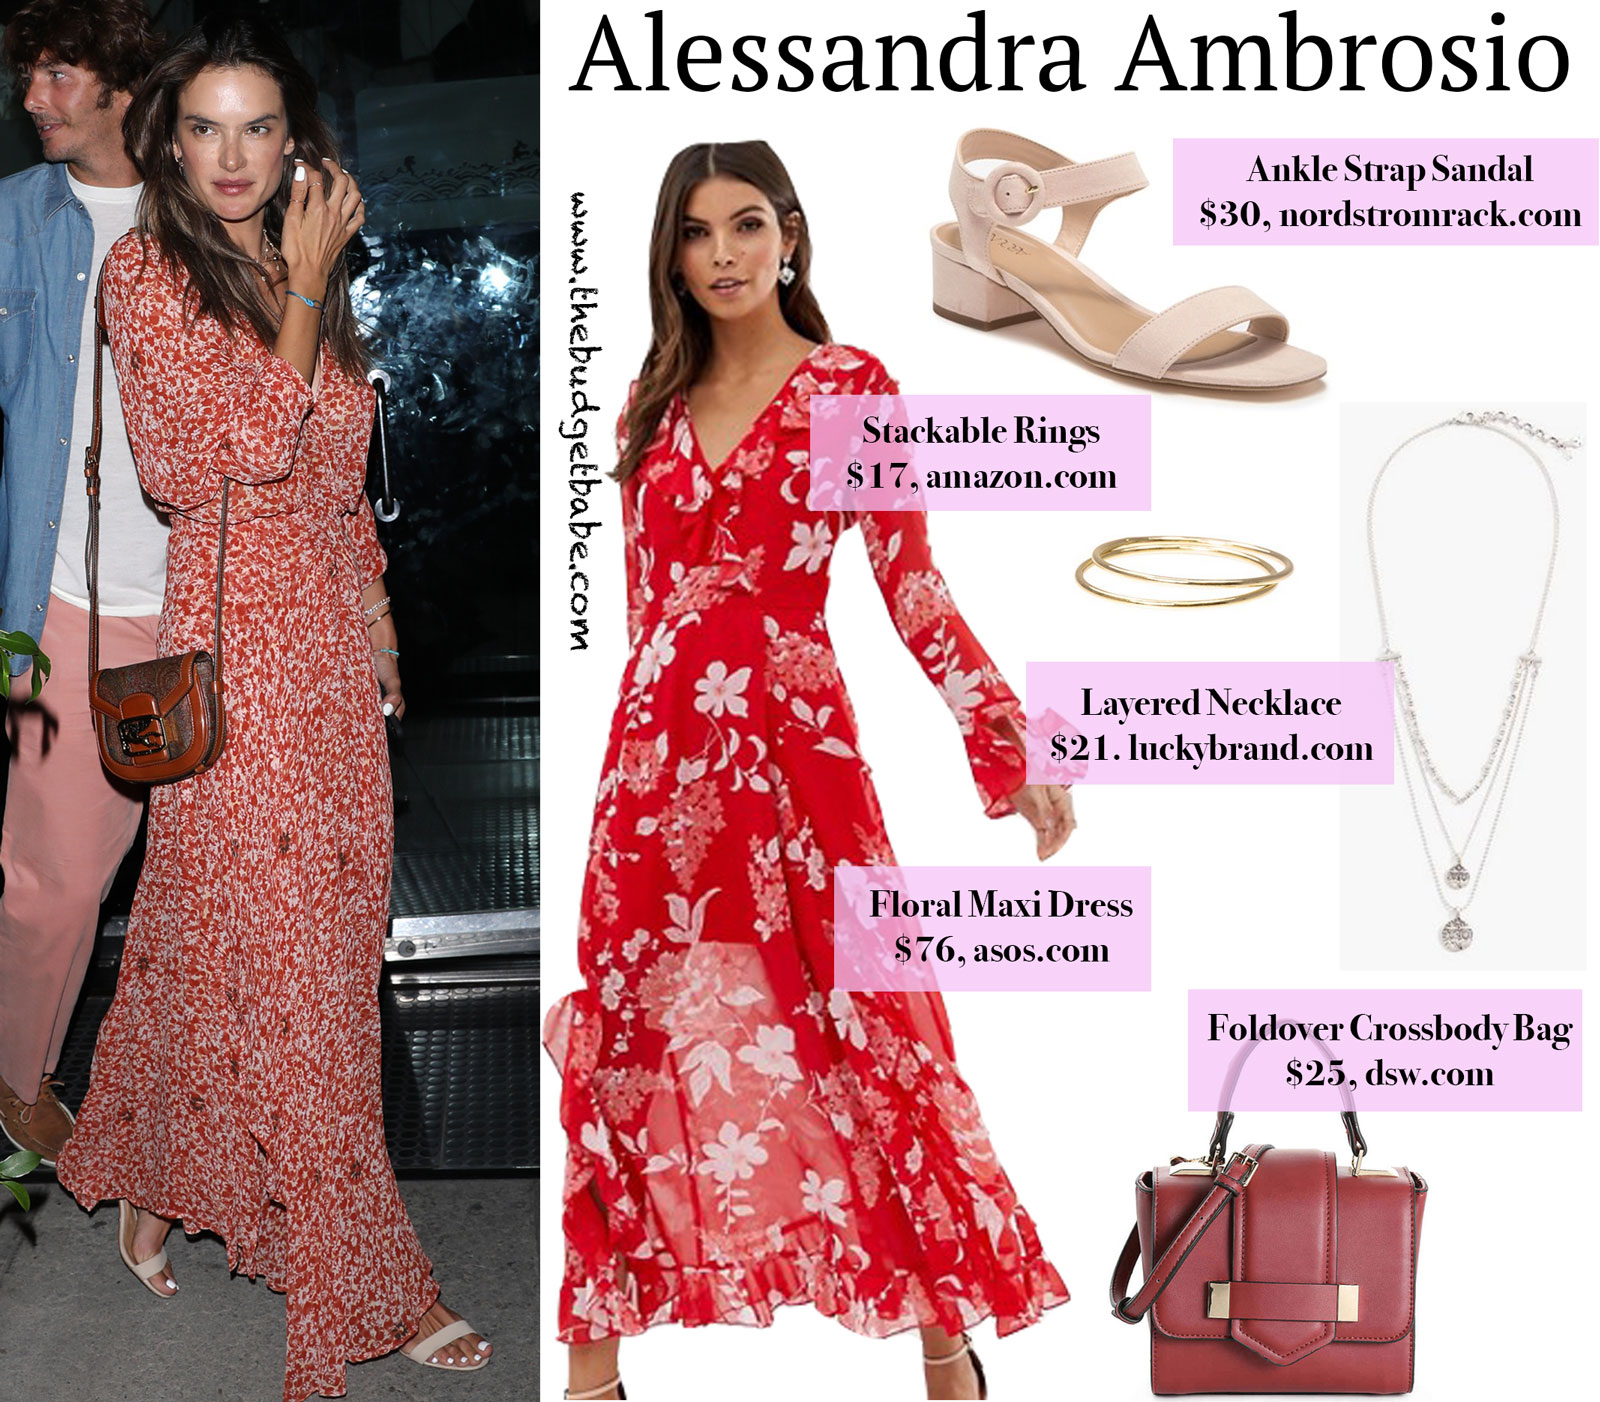 Alessandra Ambrosio Red Floral Dress Look for Less